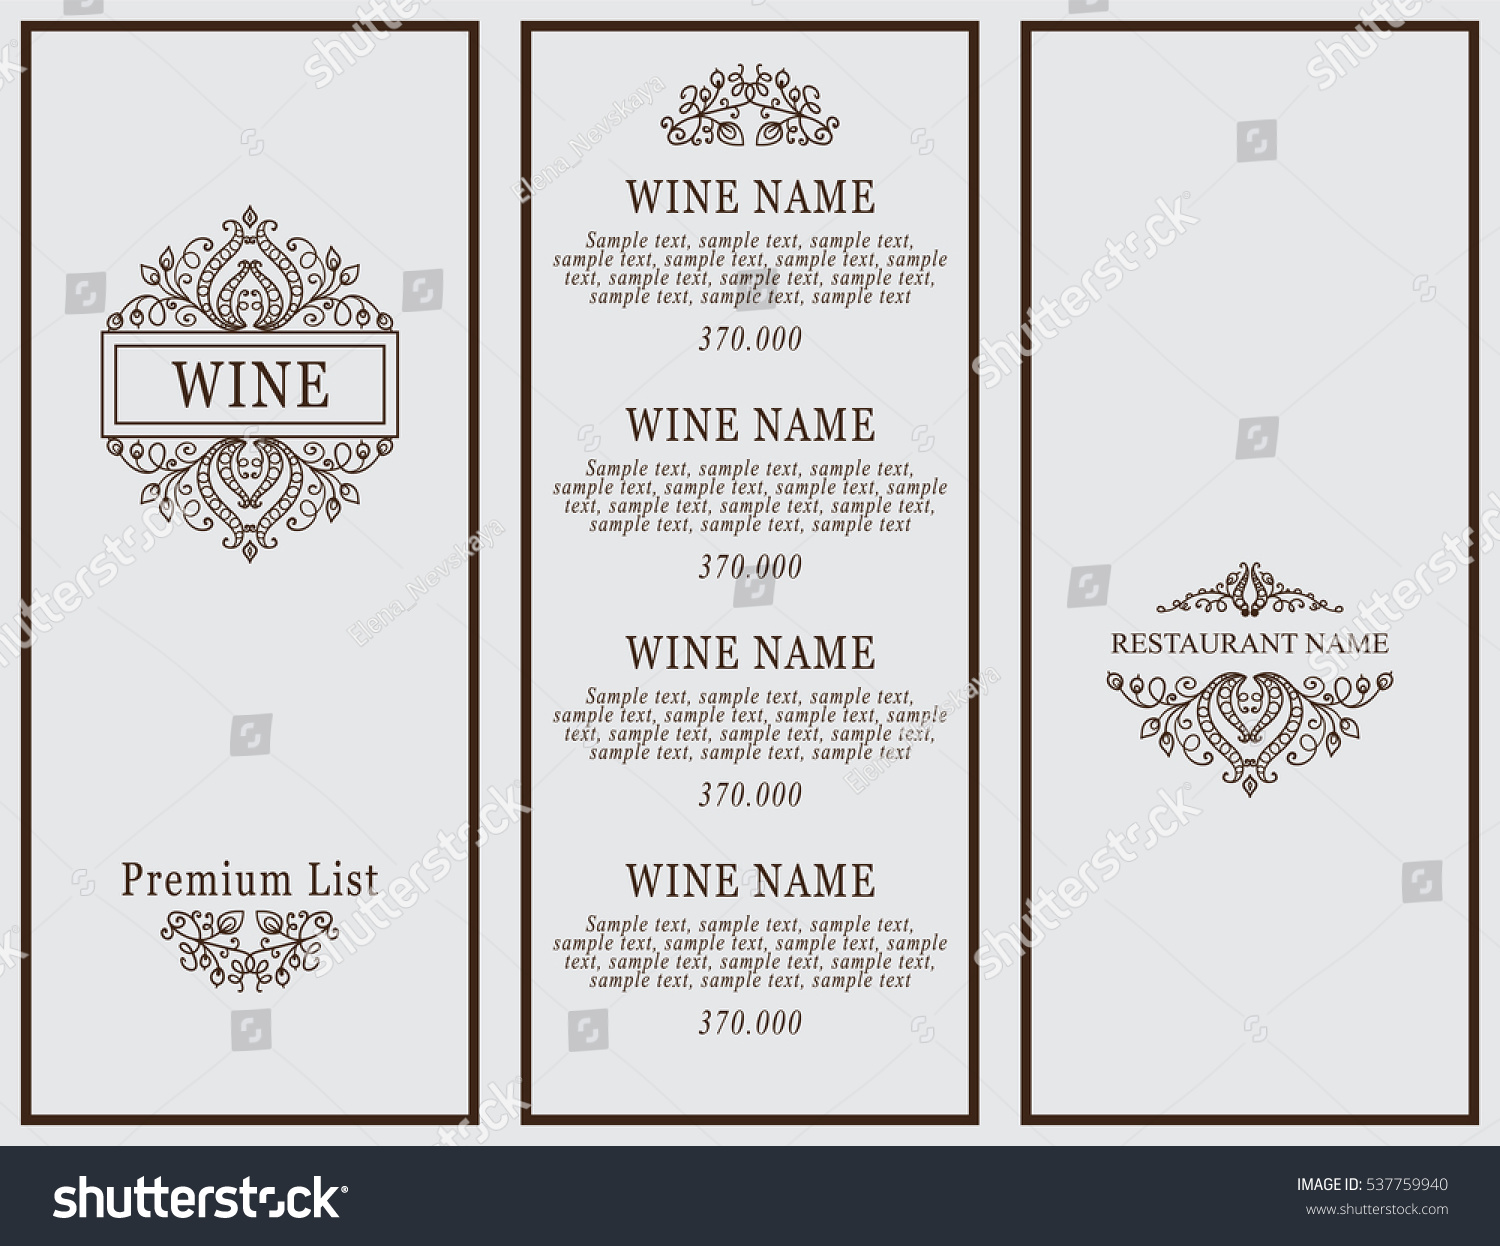 Vintage Design Restaurant Menu Wine List Stock Vector 537759940    Shutterstock